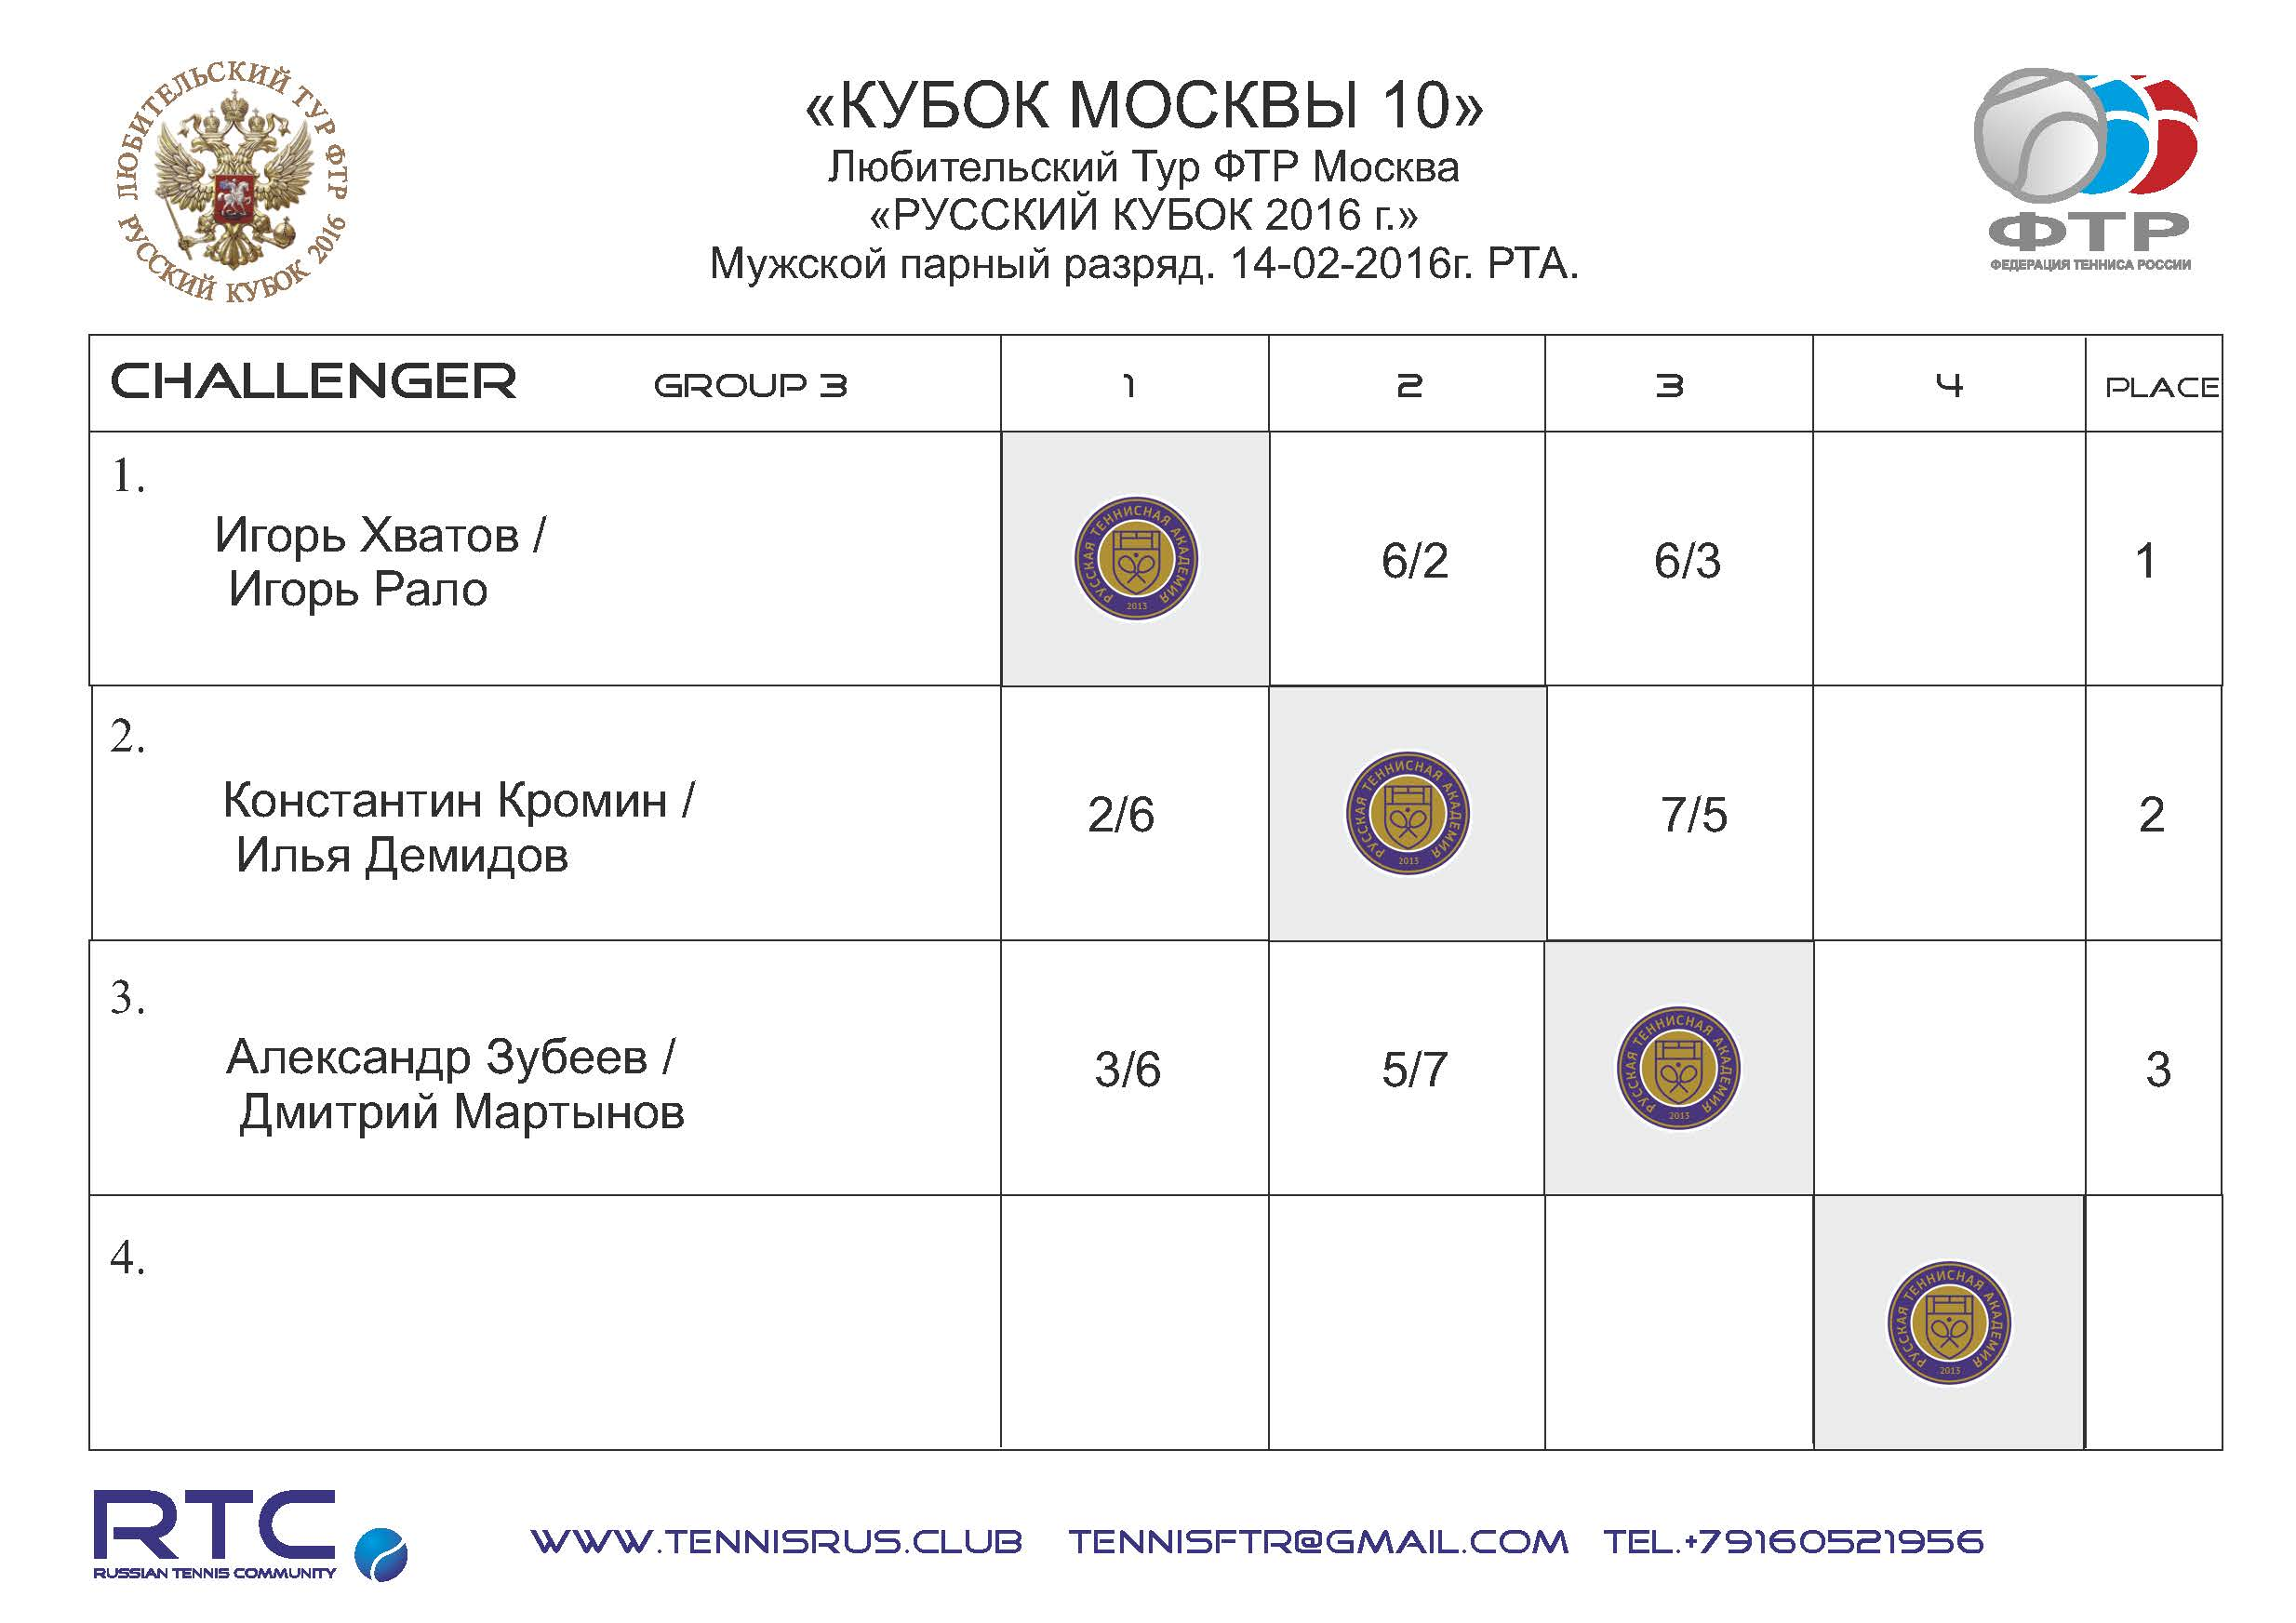 MC 10 2016 mens pairs Challenger GR 3